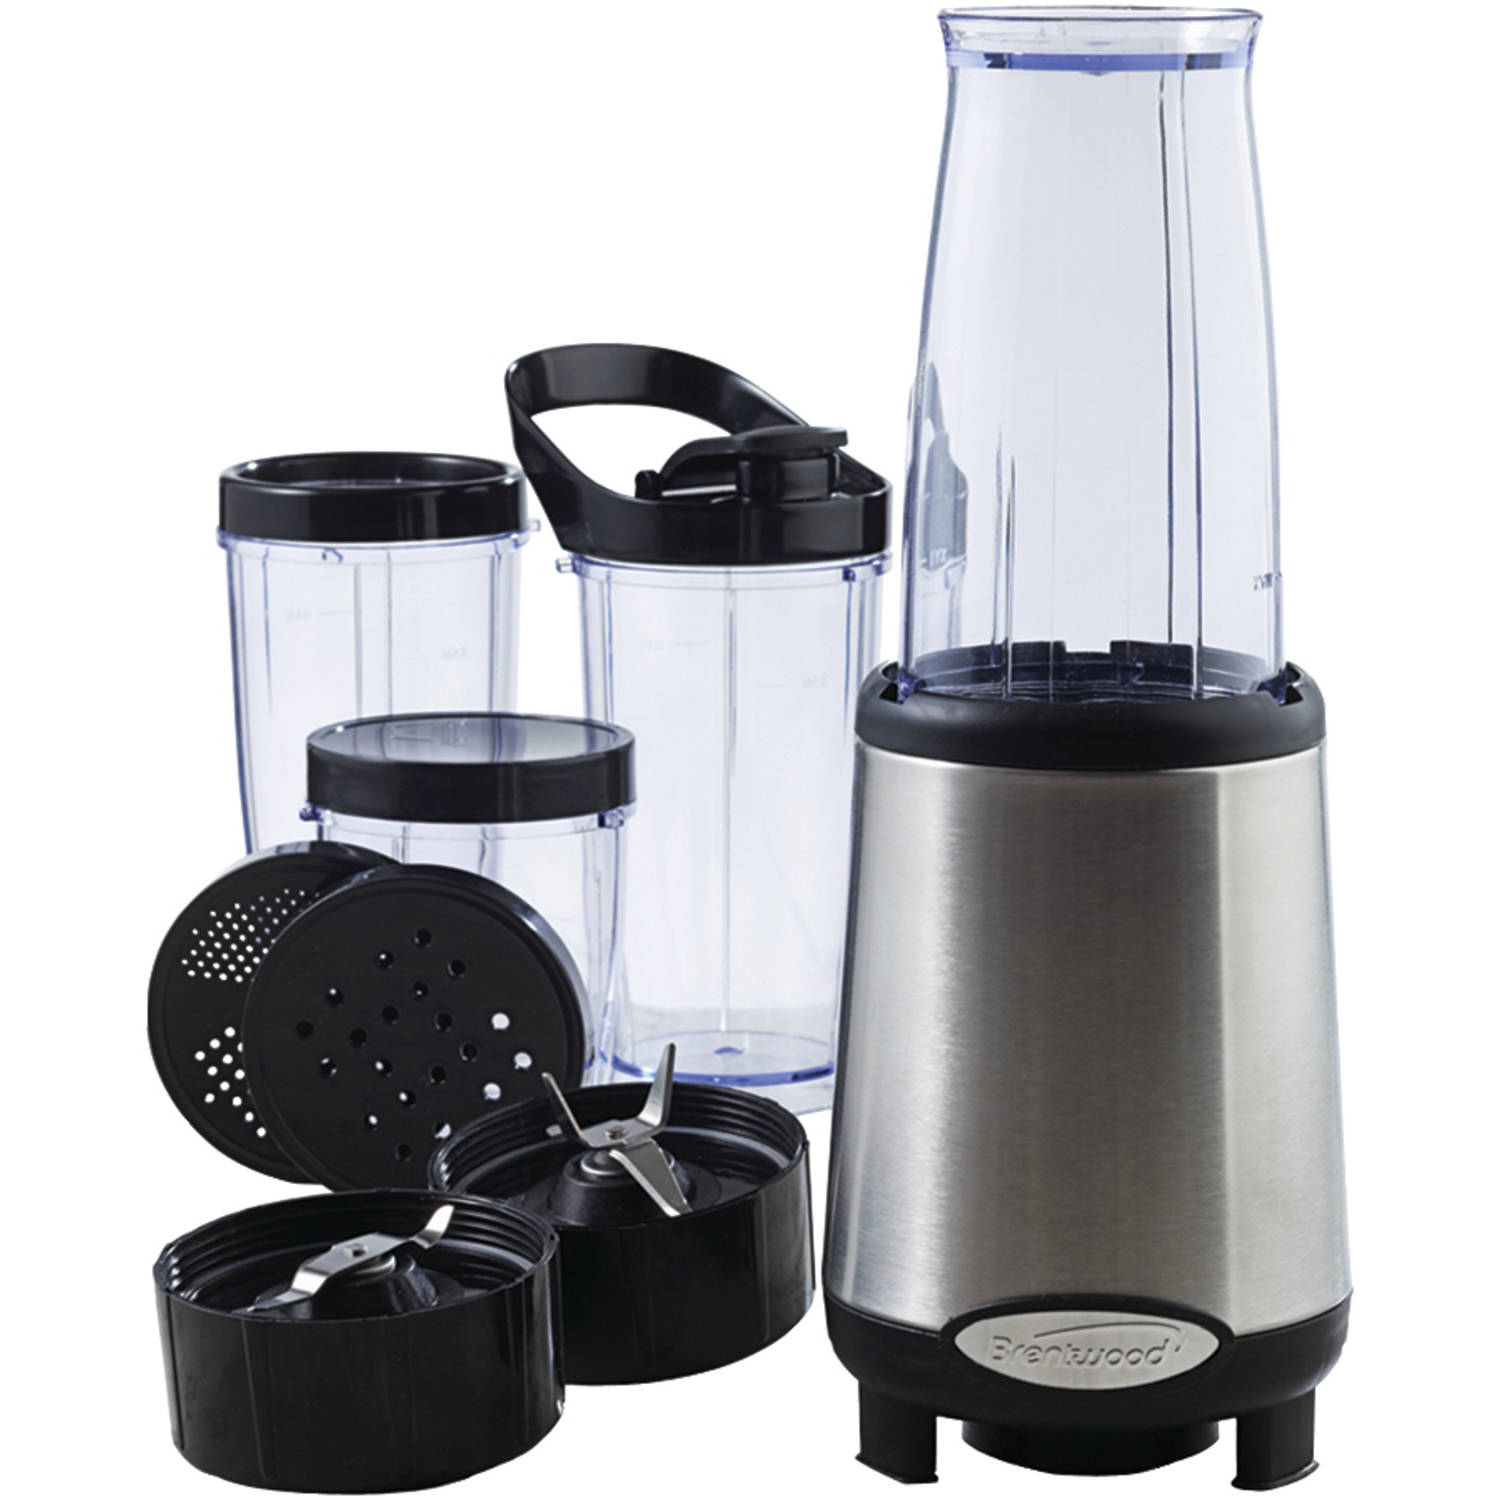 Brentwood Appliances JB-199 Multi-Pro Blender